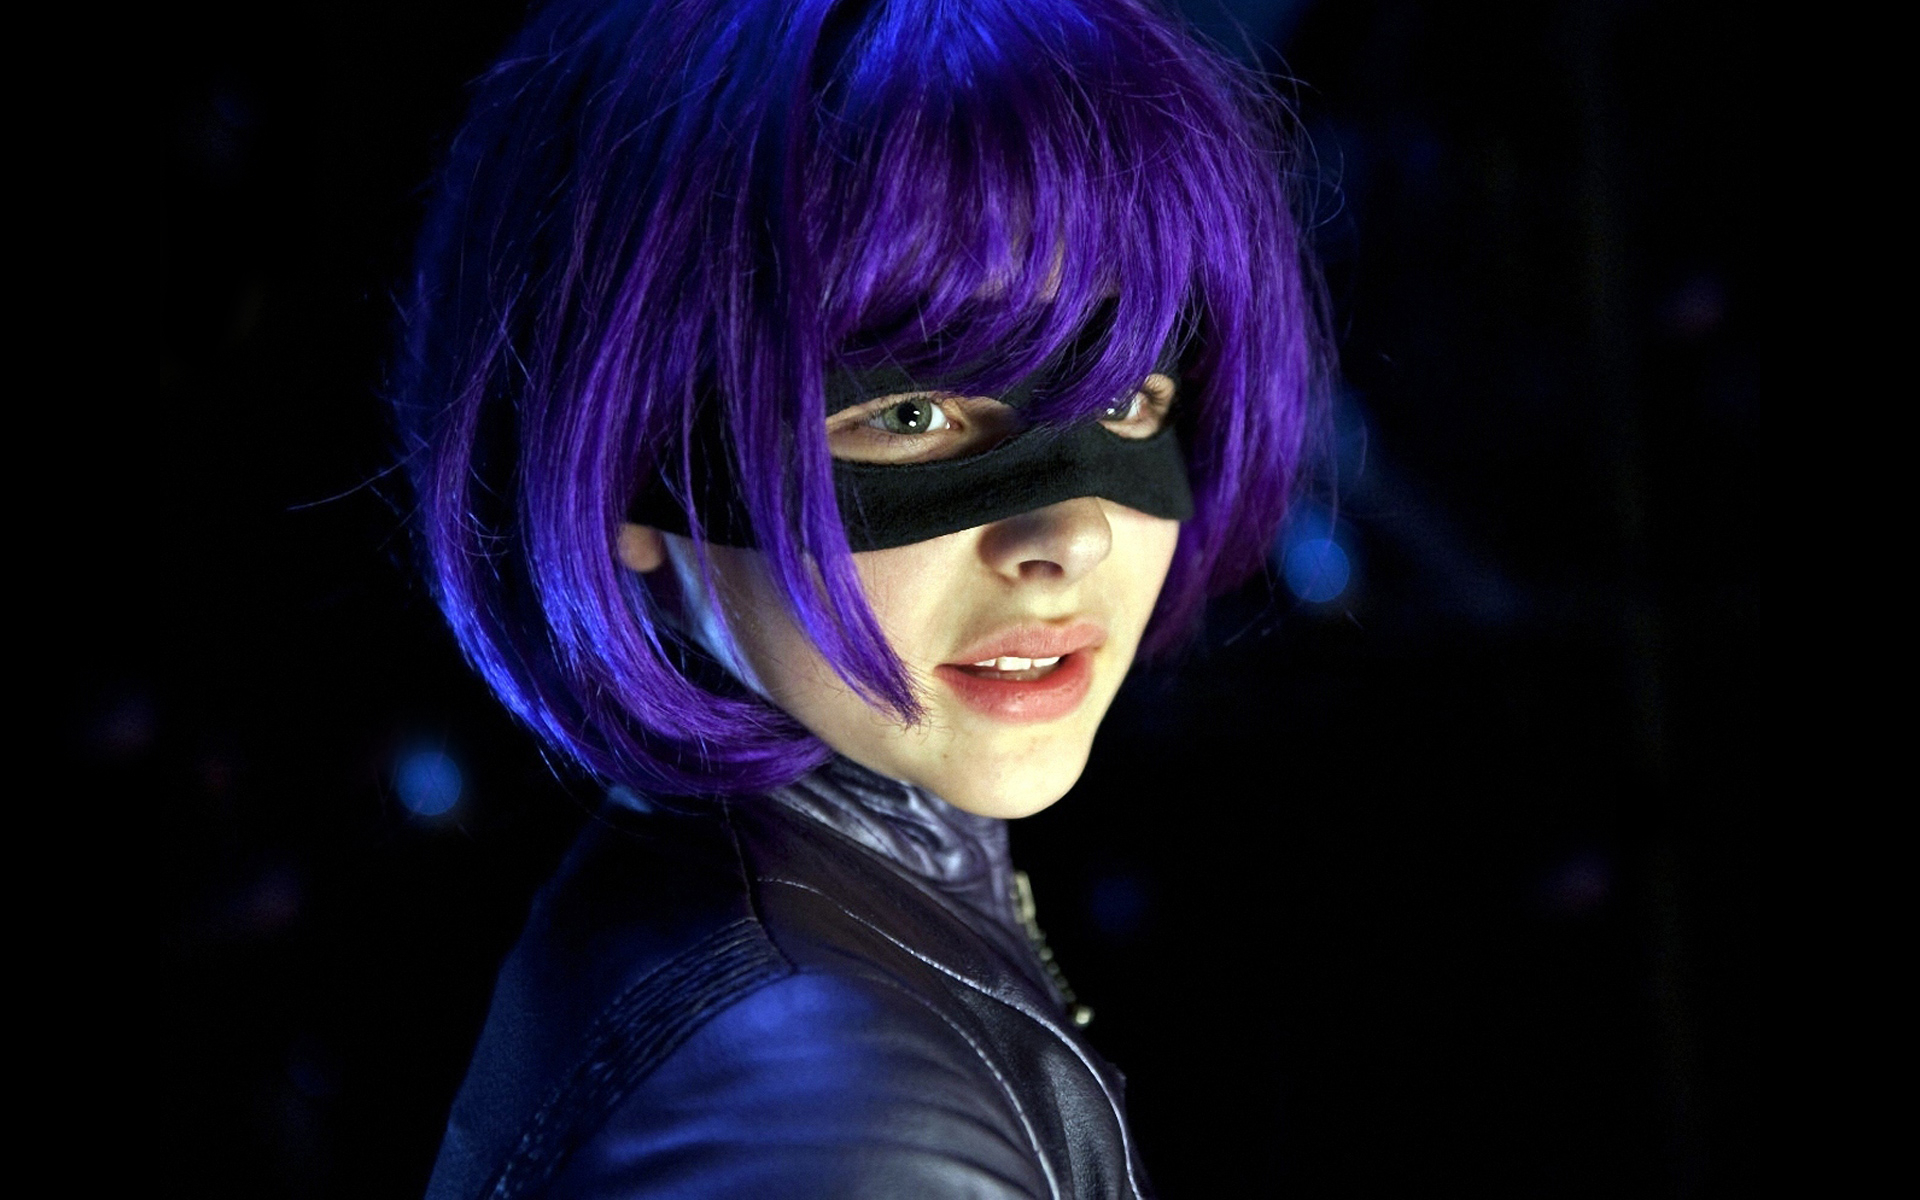 Free Hit Girl Wallpaper 29442 2000x1125 px